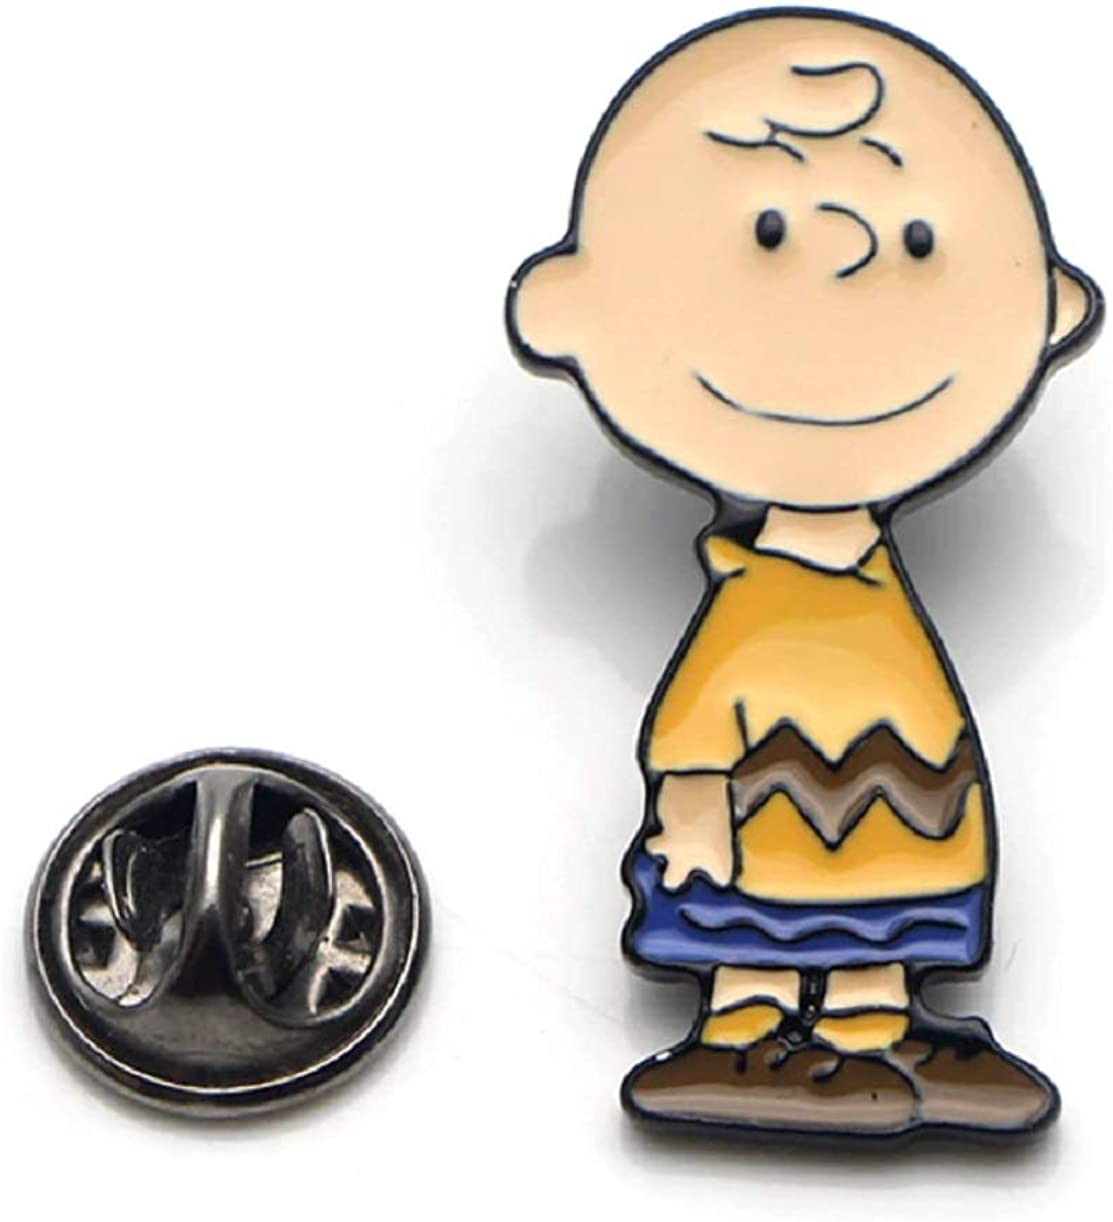 Crazy Adorable Charlie Brown Inspired Pin.Wear Enamel on Y 1.25